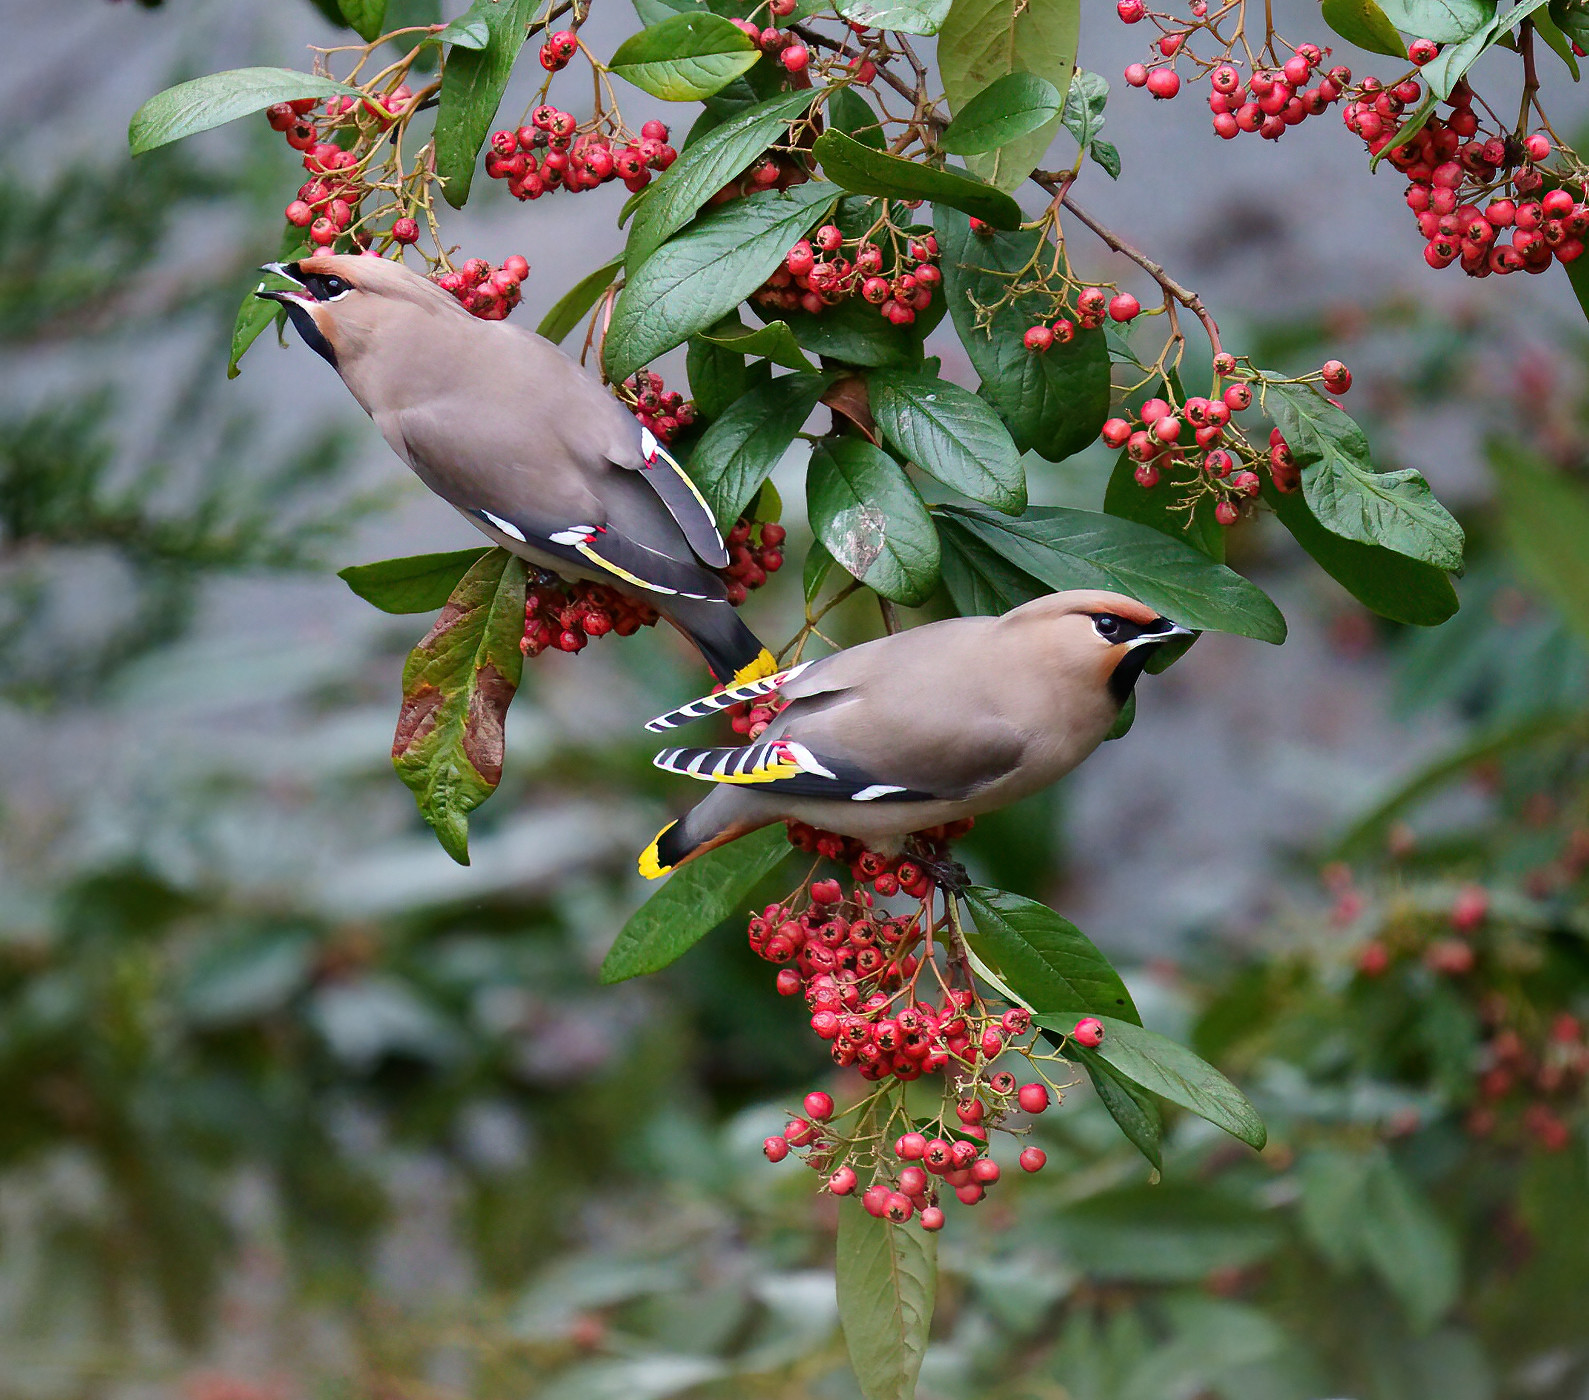 Waxwing/s